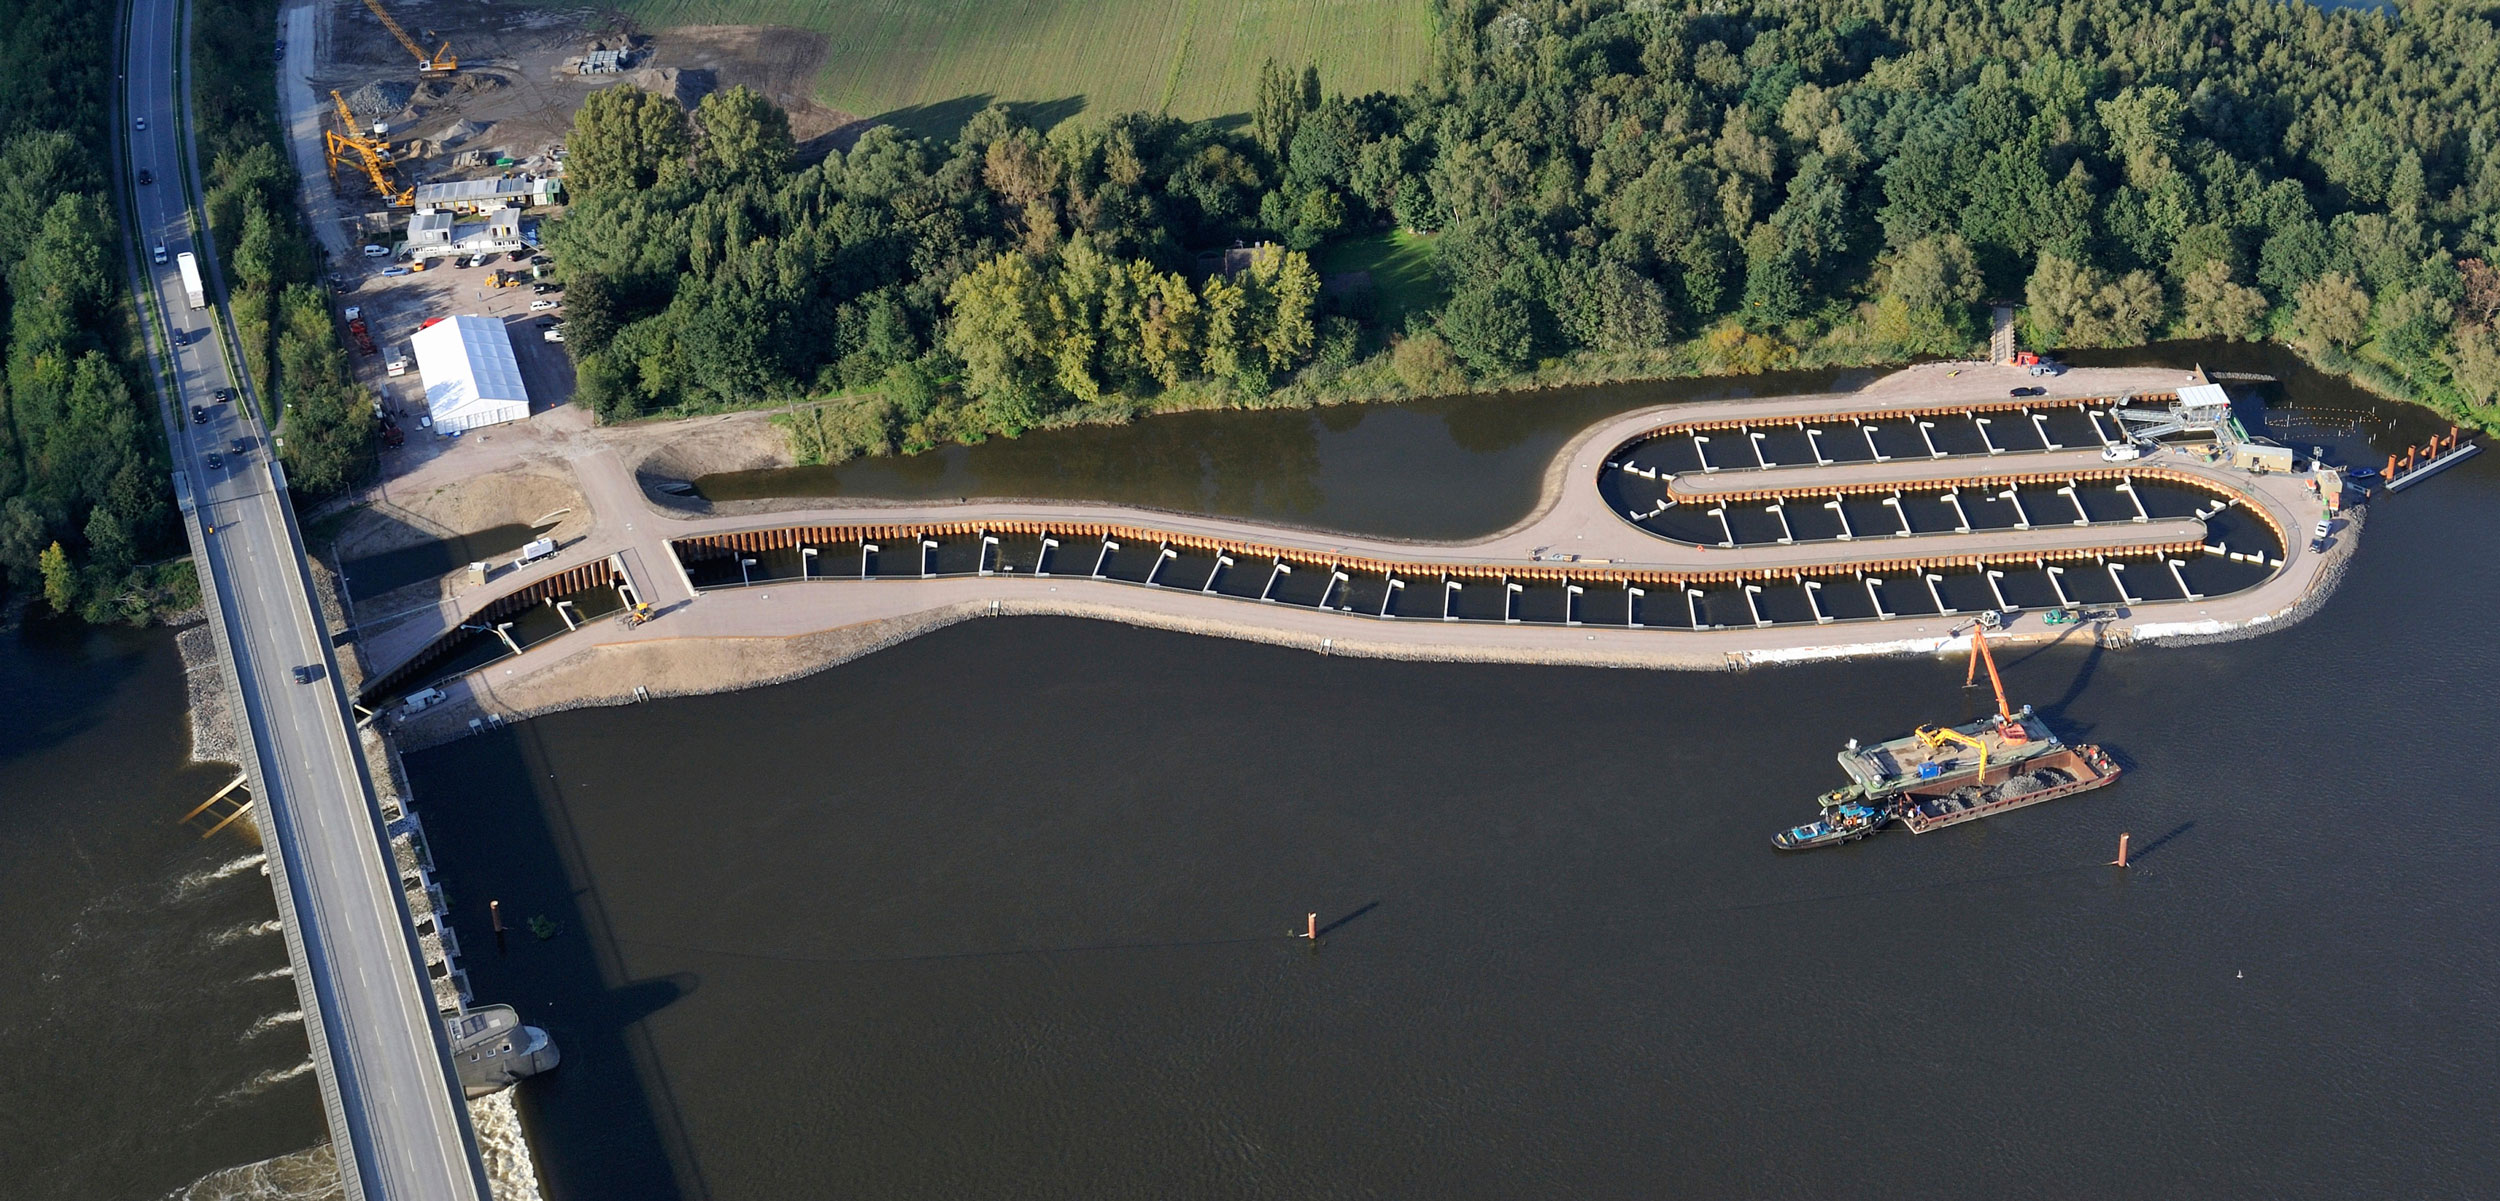 A fish ladder in the Elbe river, Germany